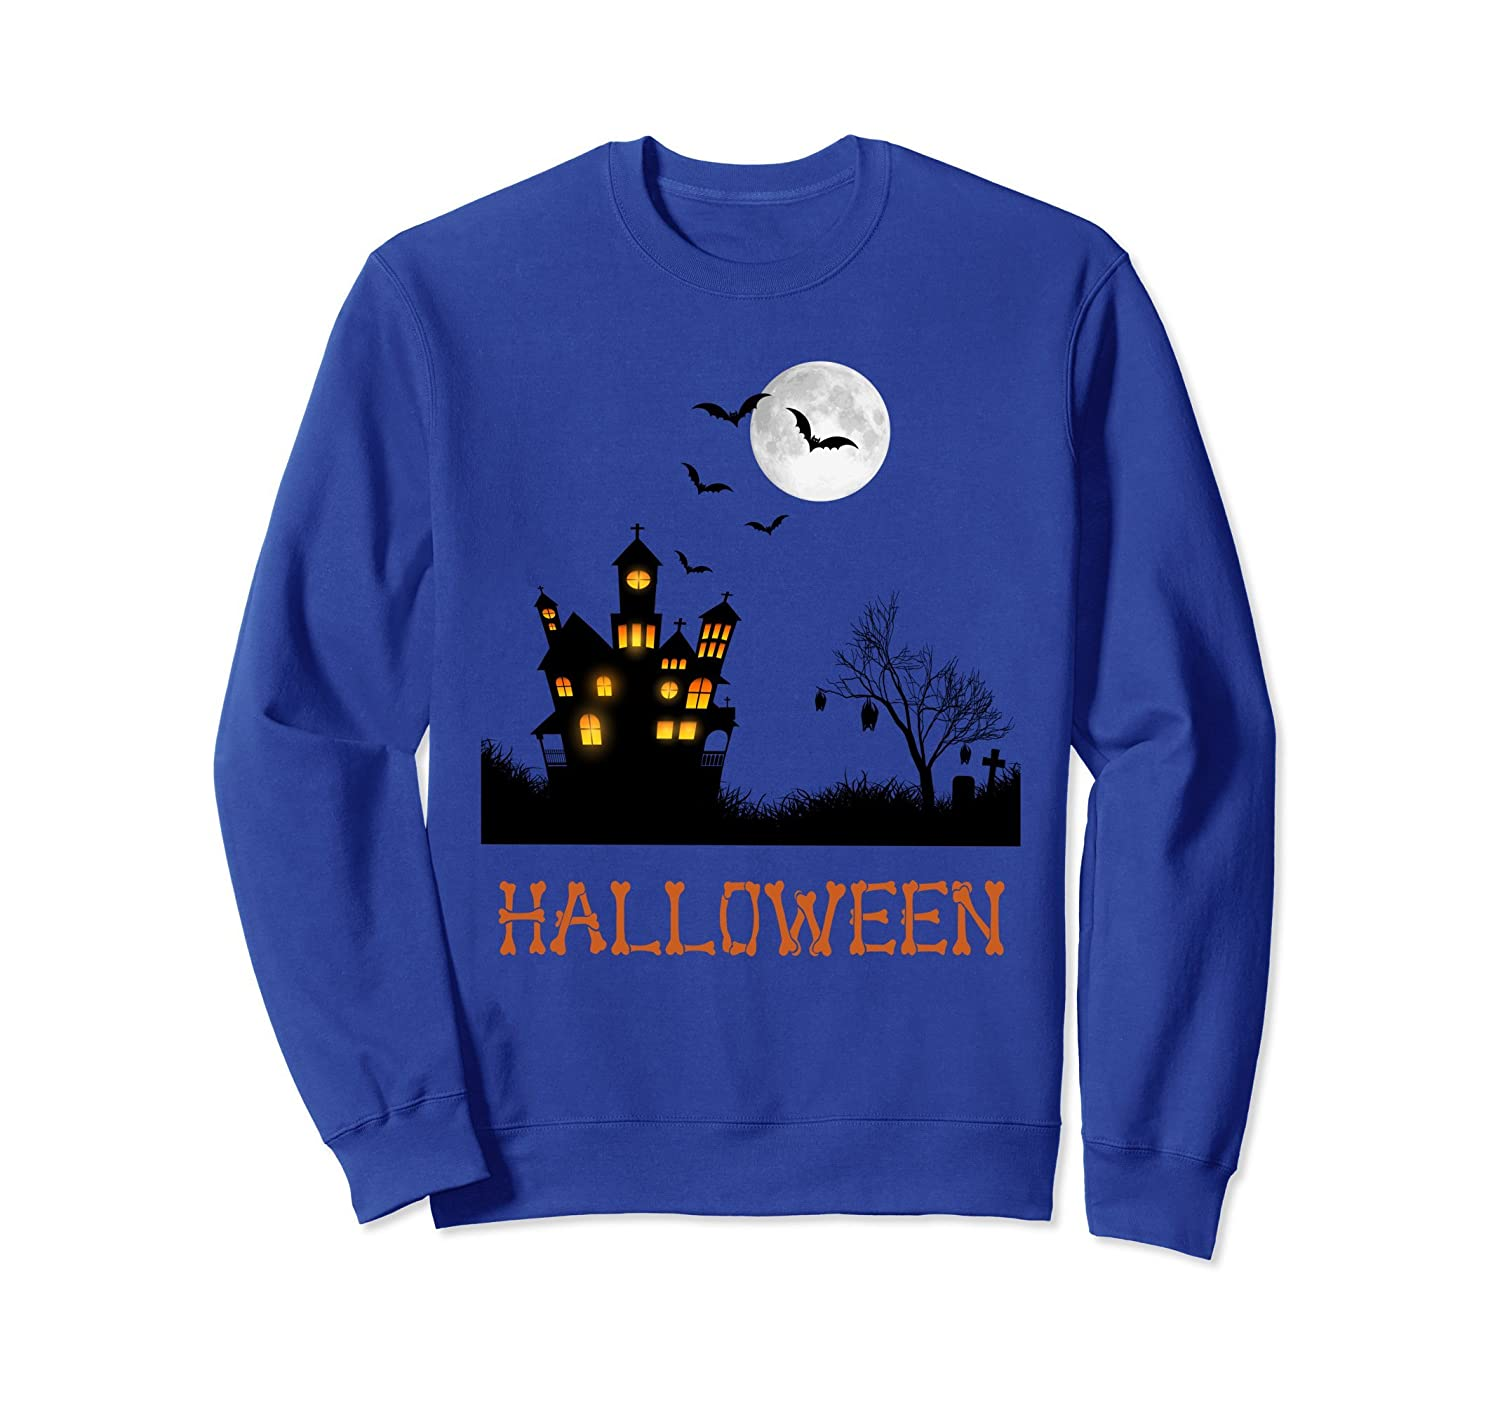 Cool Graphic Design Haunted House Halloween Sweatshirt-mt